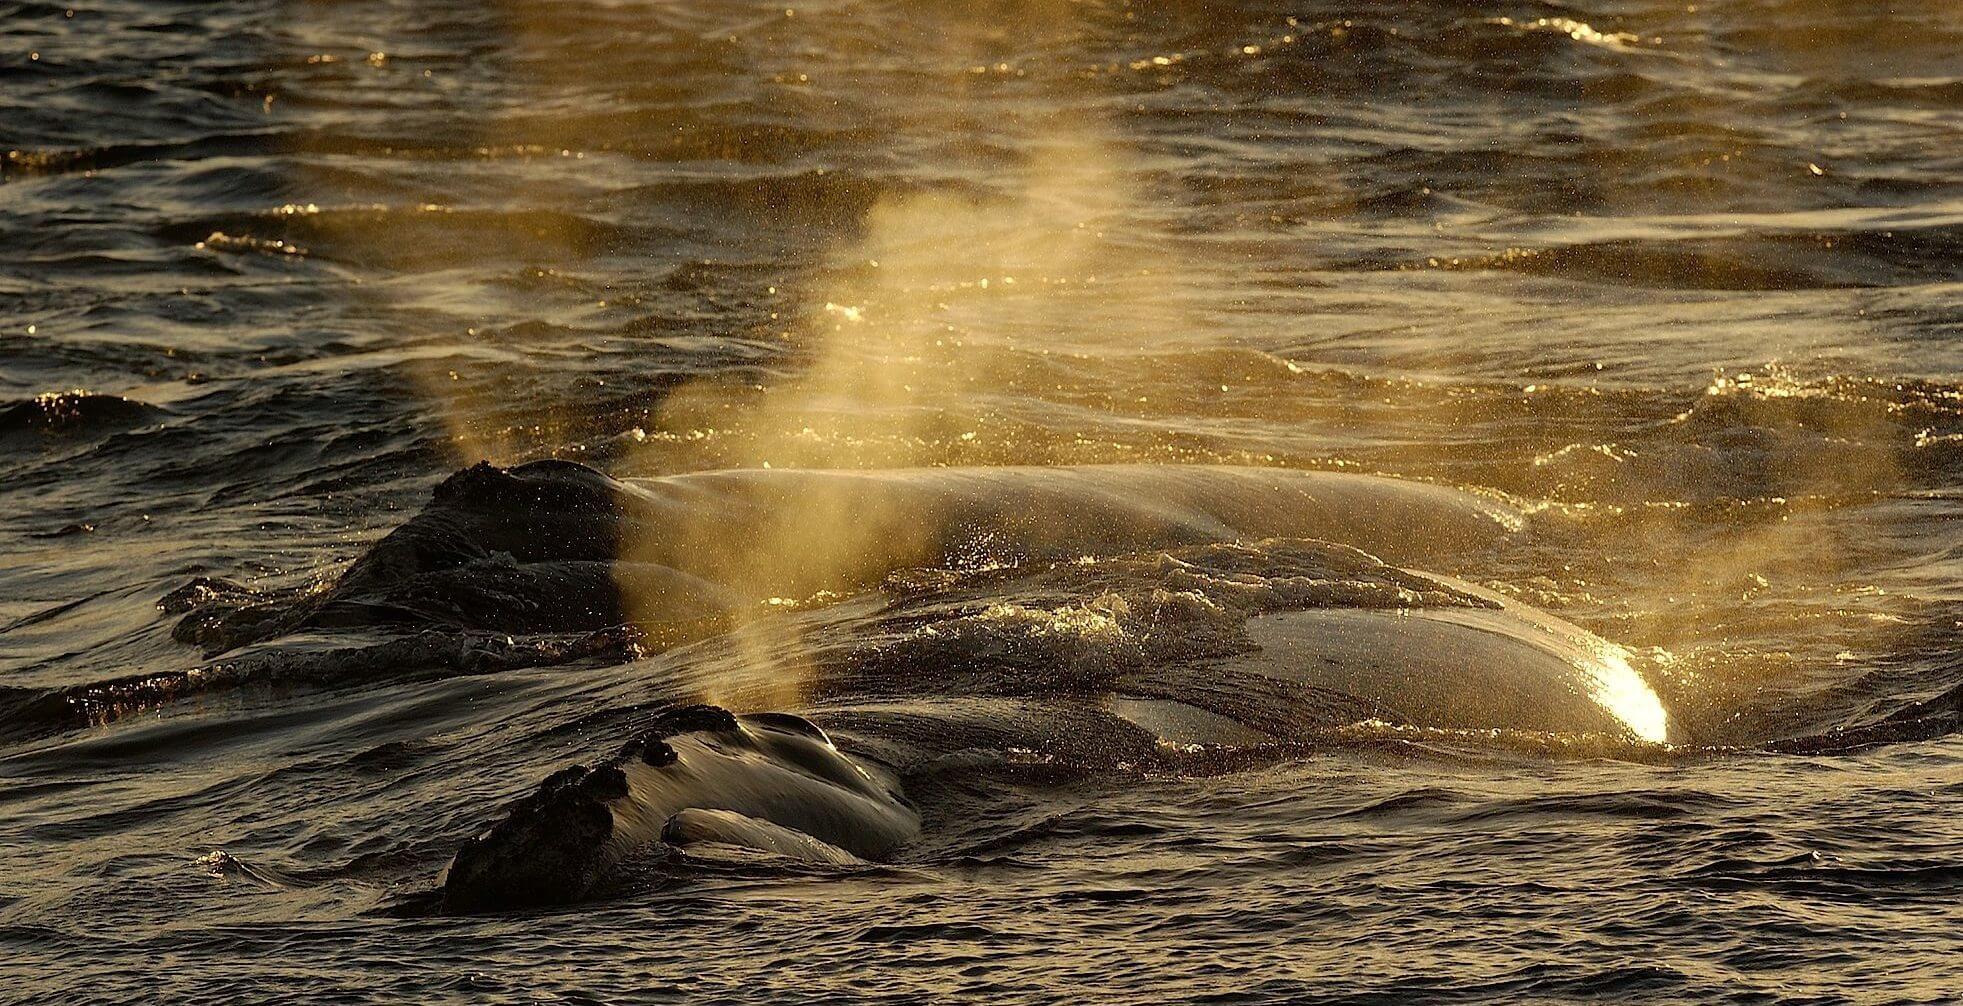 Right whale backs at sunset